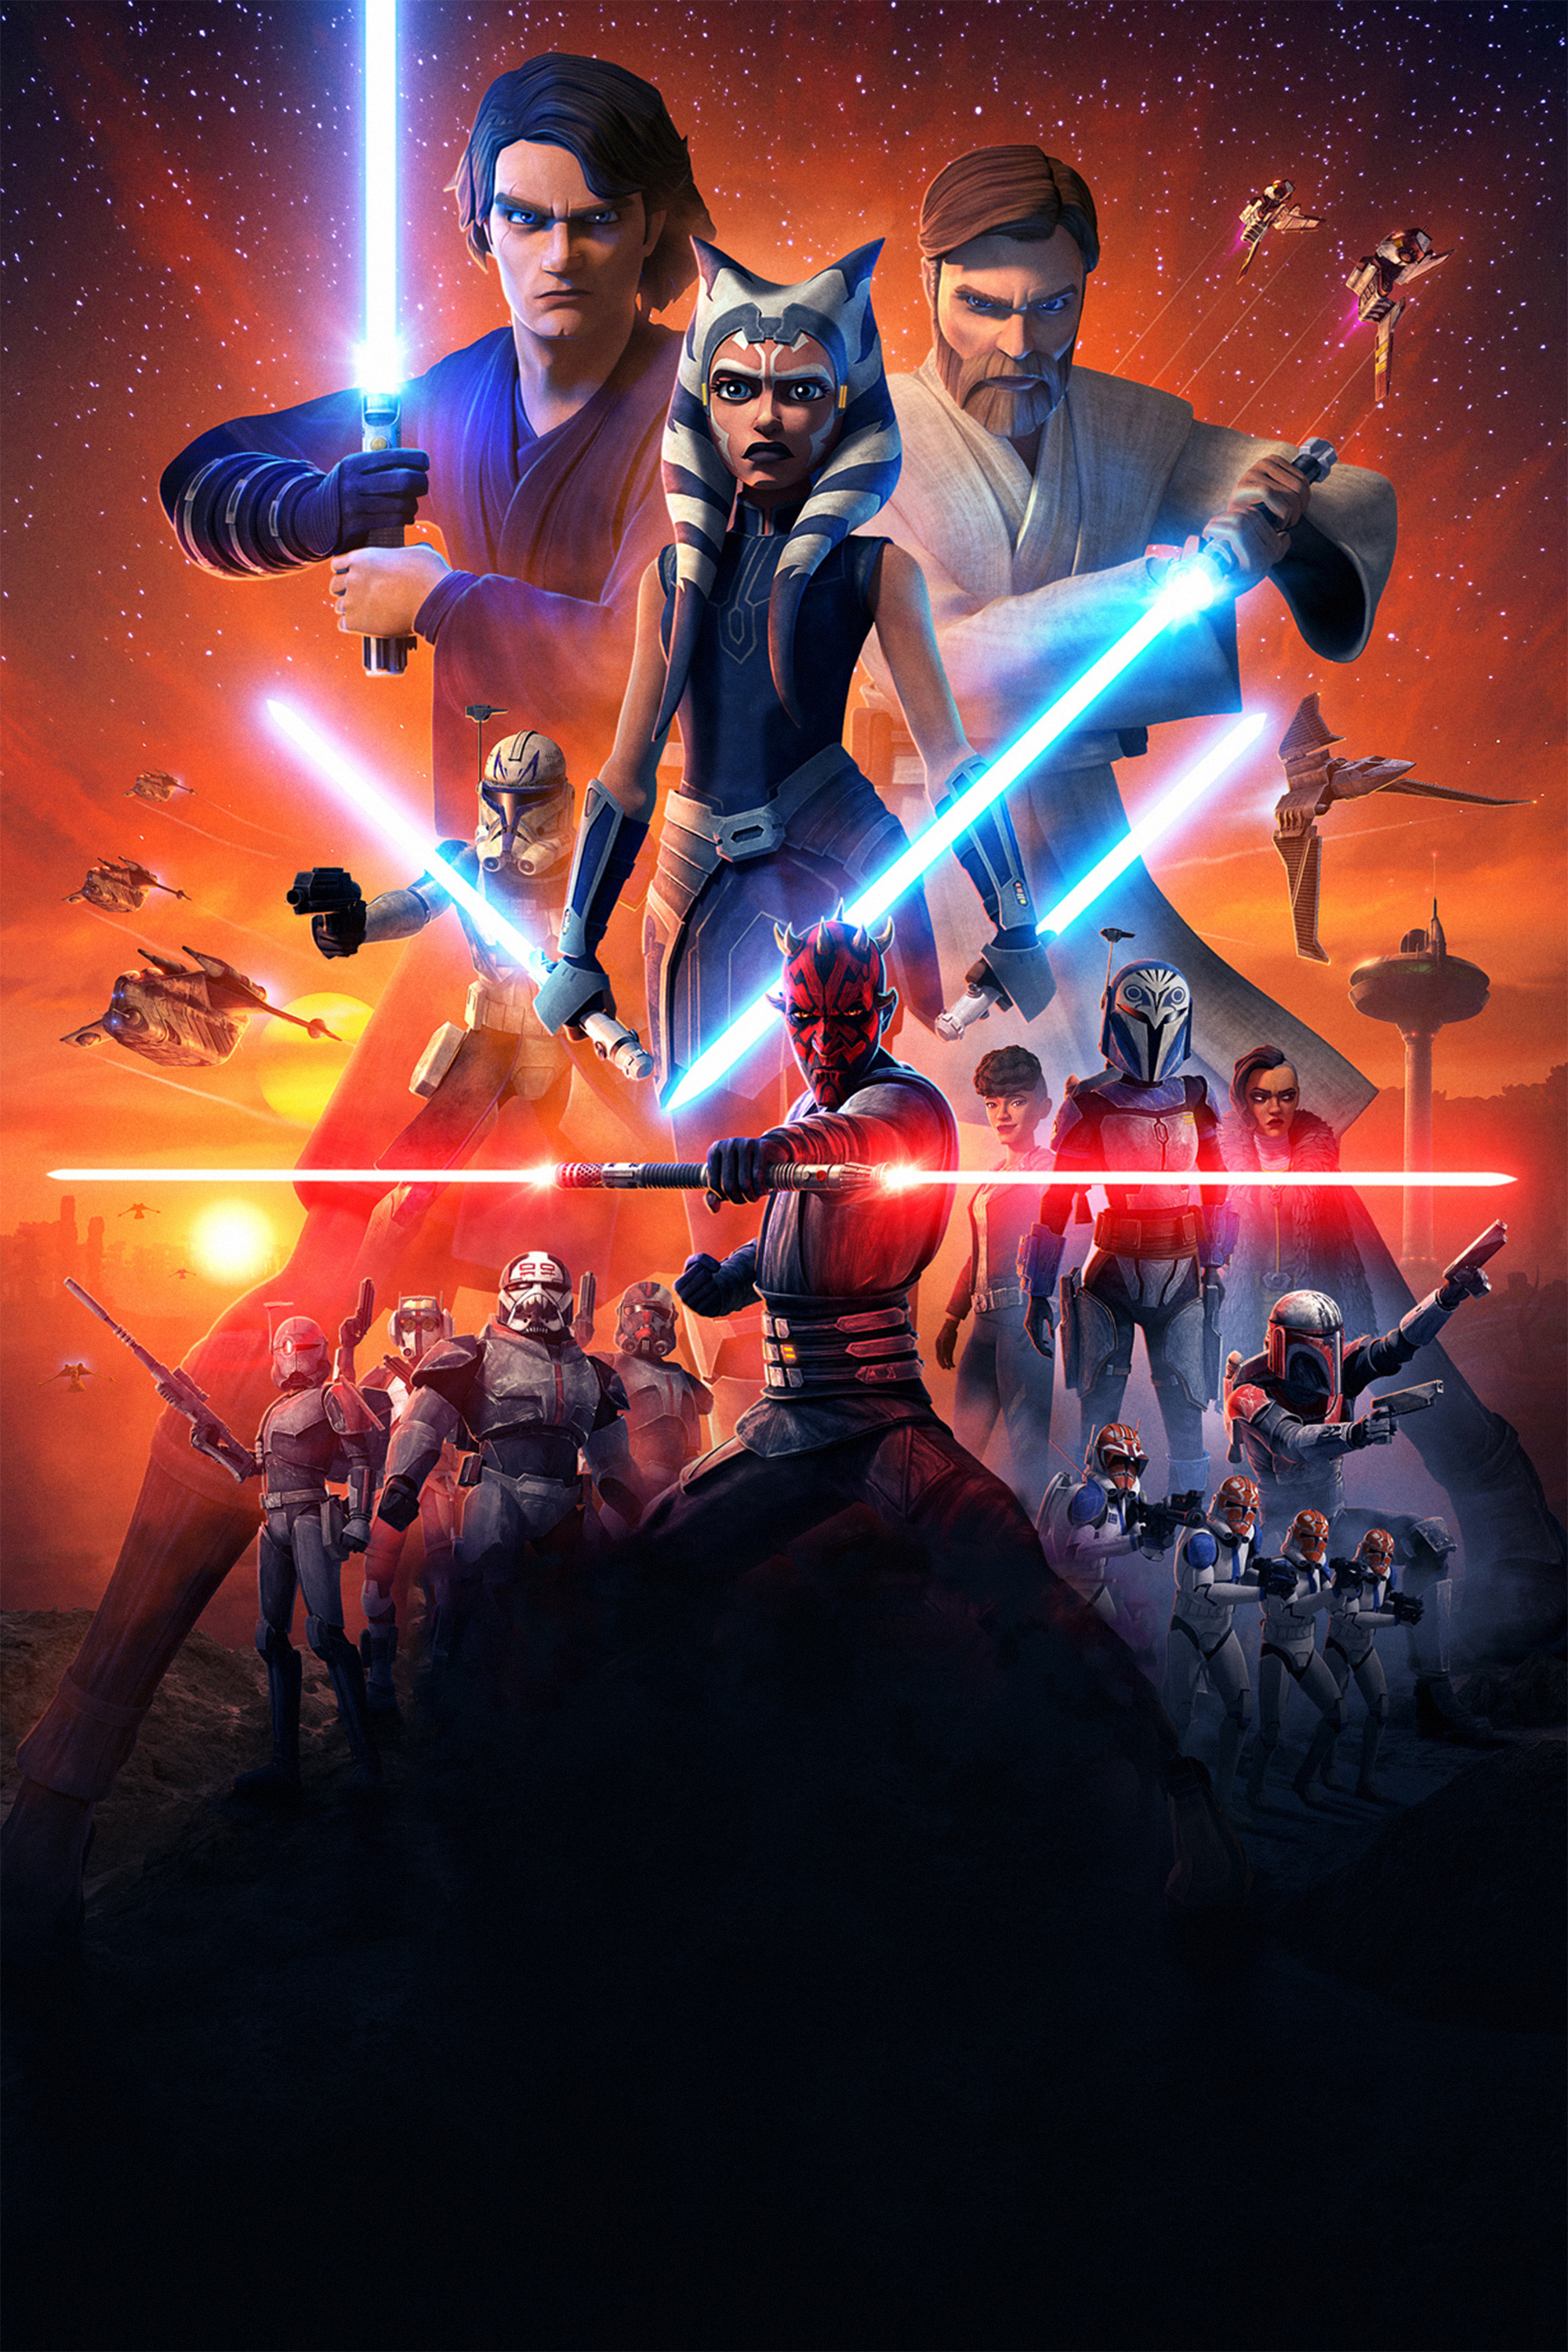 1280x2120 The Clone Wars 2020 Iphone 6 Plus Wallpaper Hd Tv Series 4k Wallpapers Images Photos And Background